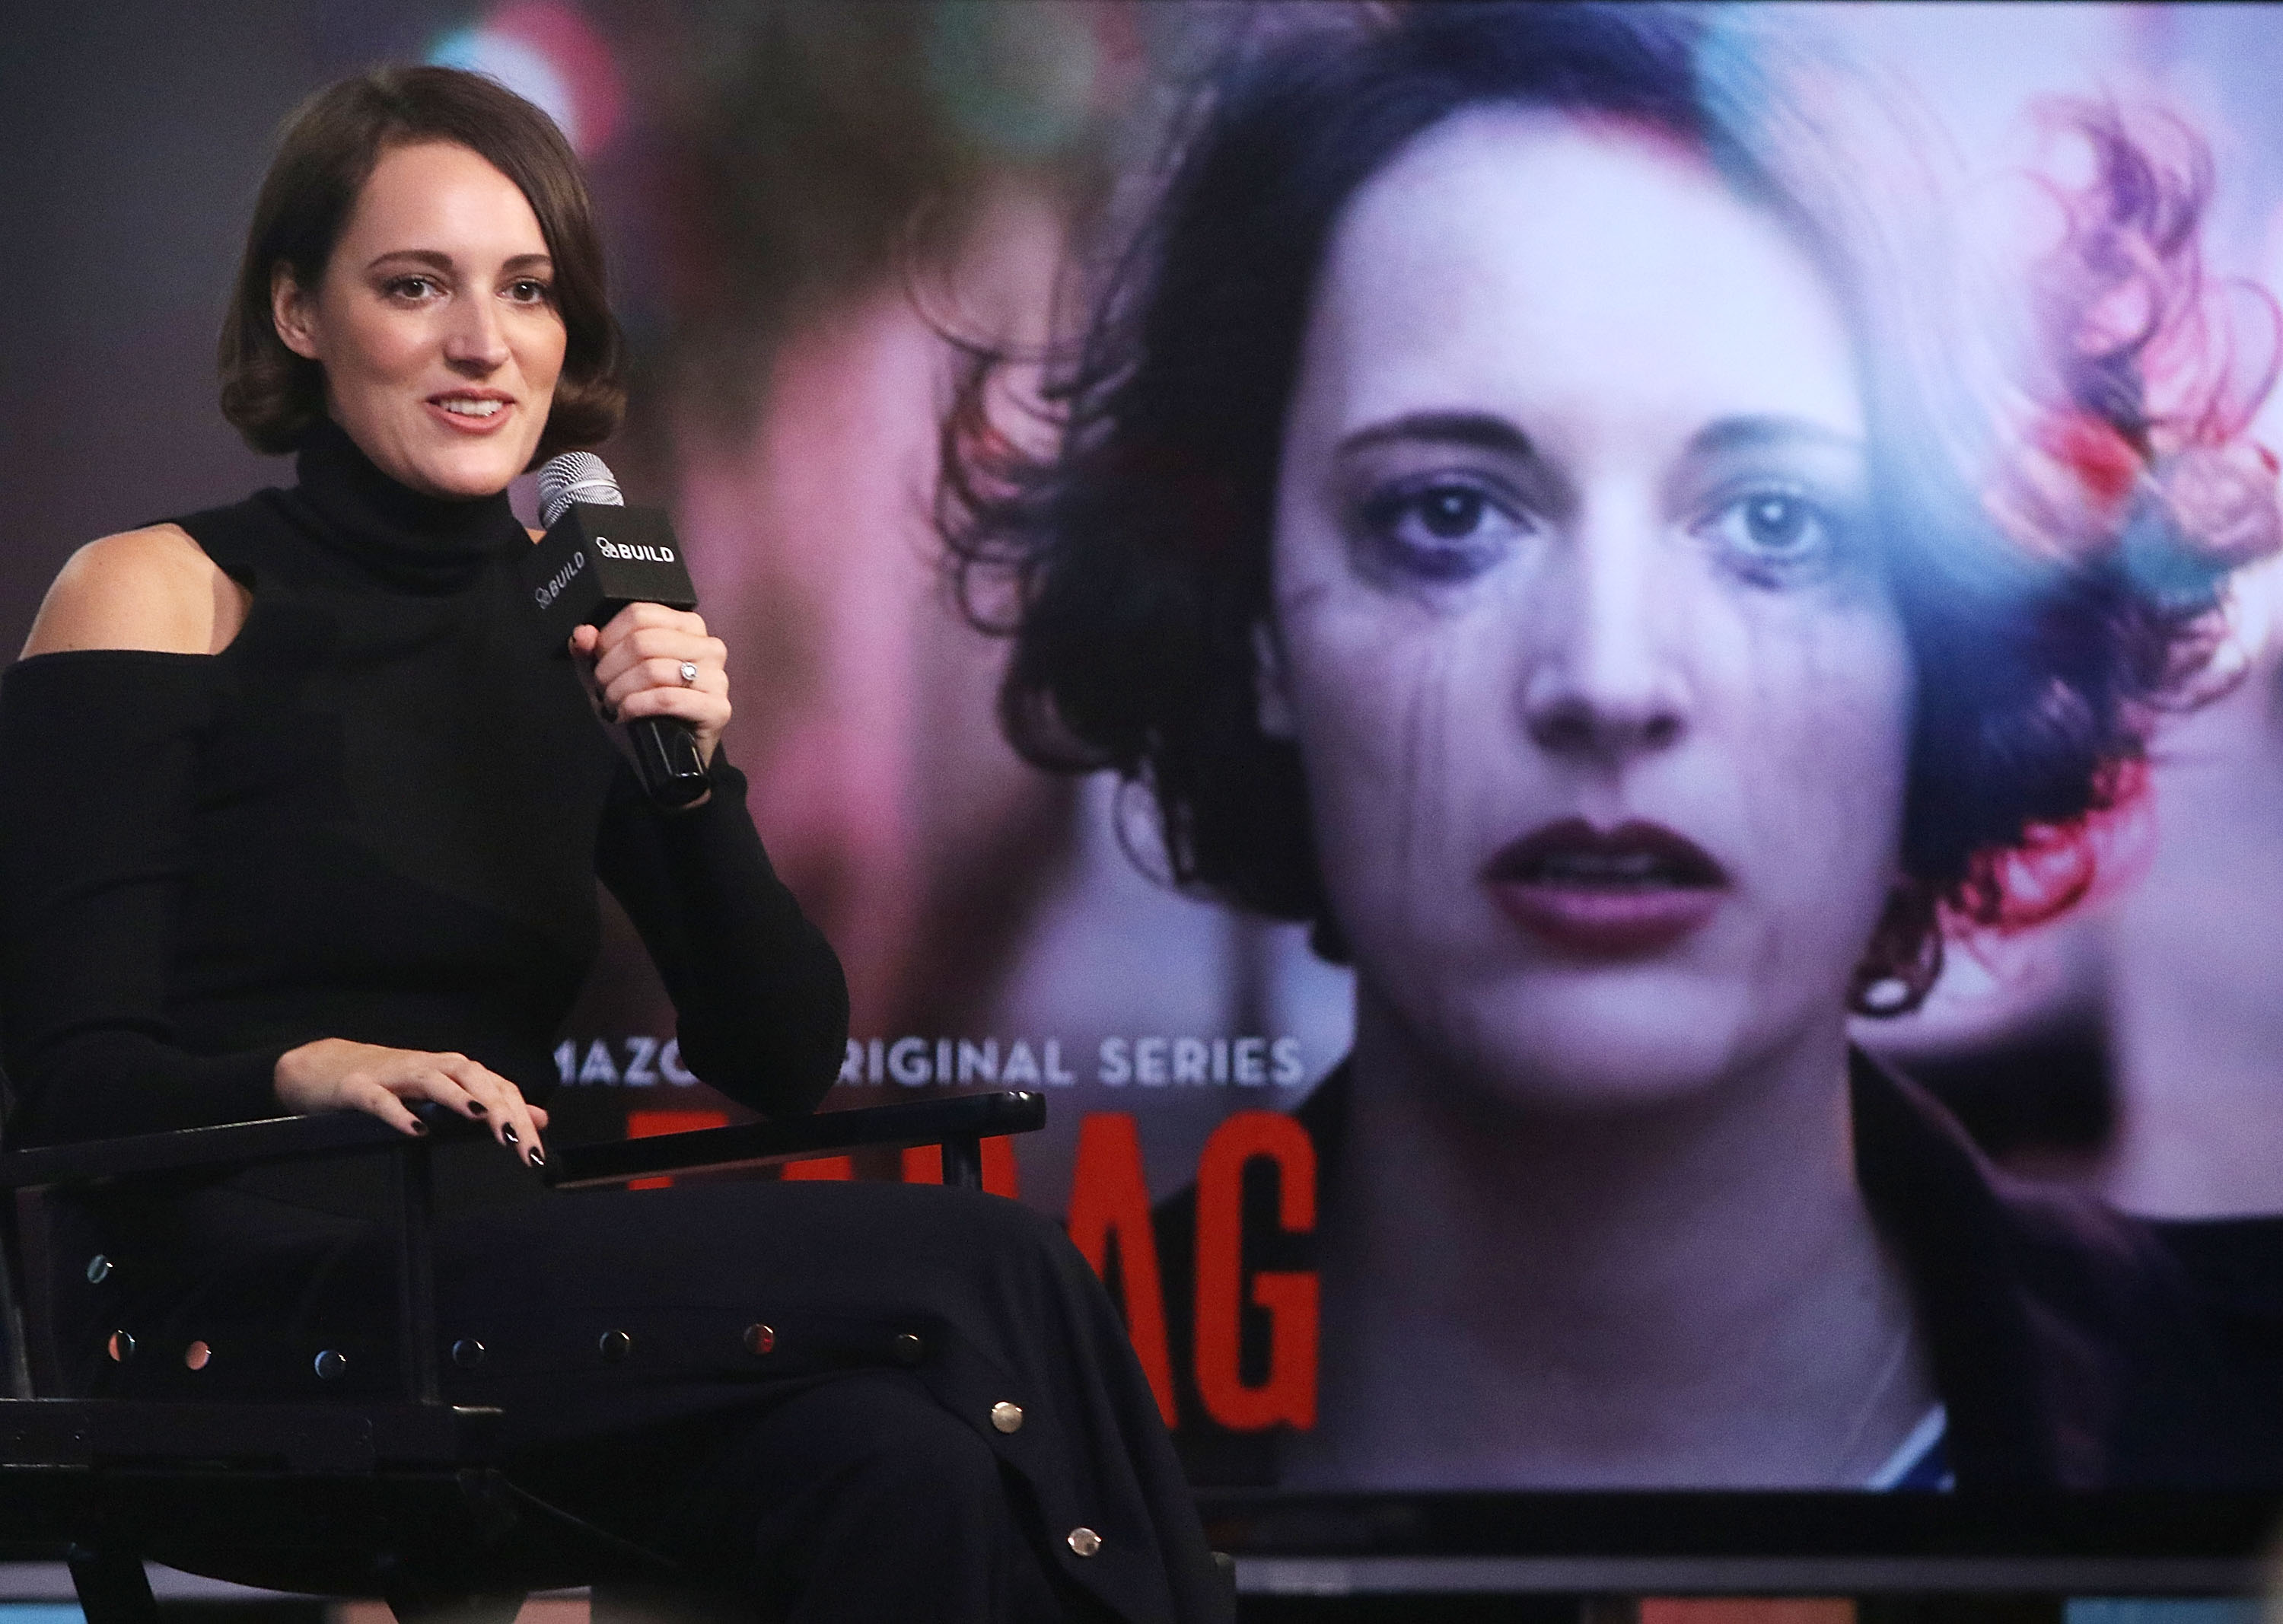 Phoebe Waller-Bridge's Brilliant 'Fleabag' Play Is Heading to Movie Theaters - VICE